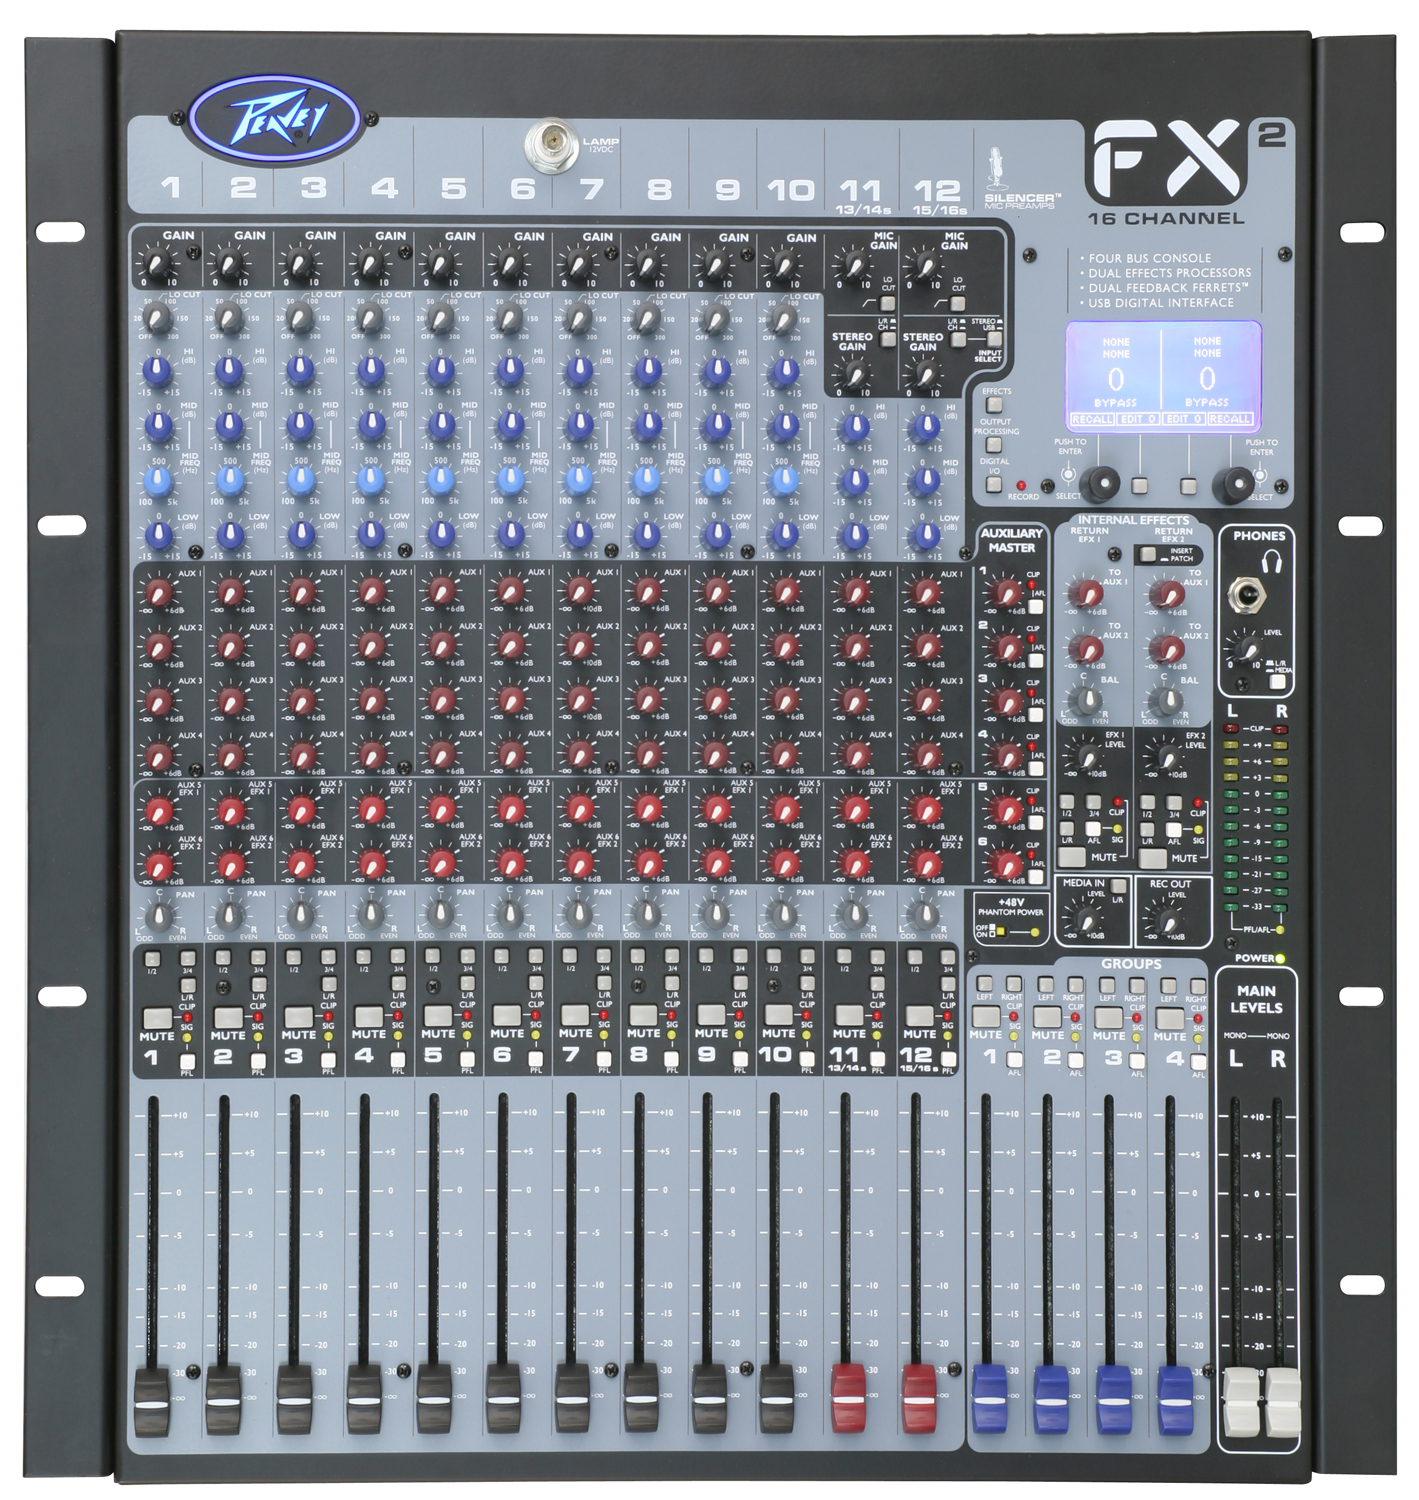 Fx2 16 Audio Mixers Projects Circuits 7 Mixer Straight On